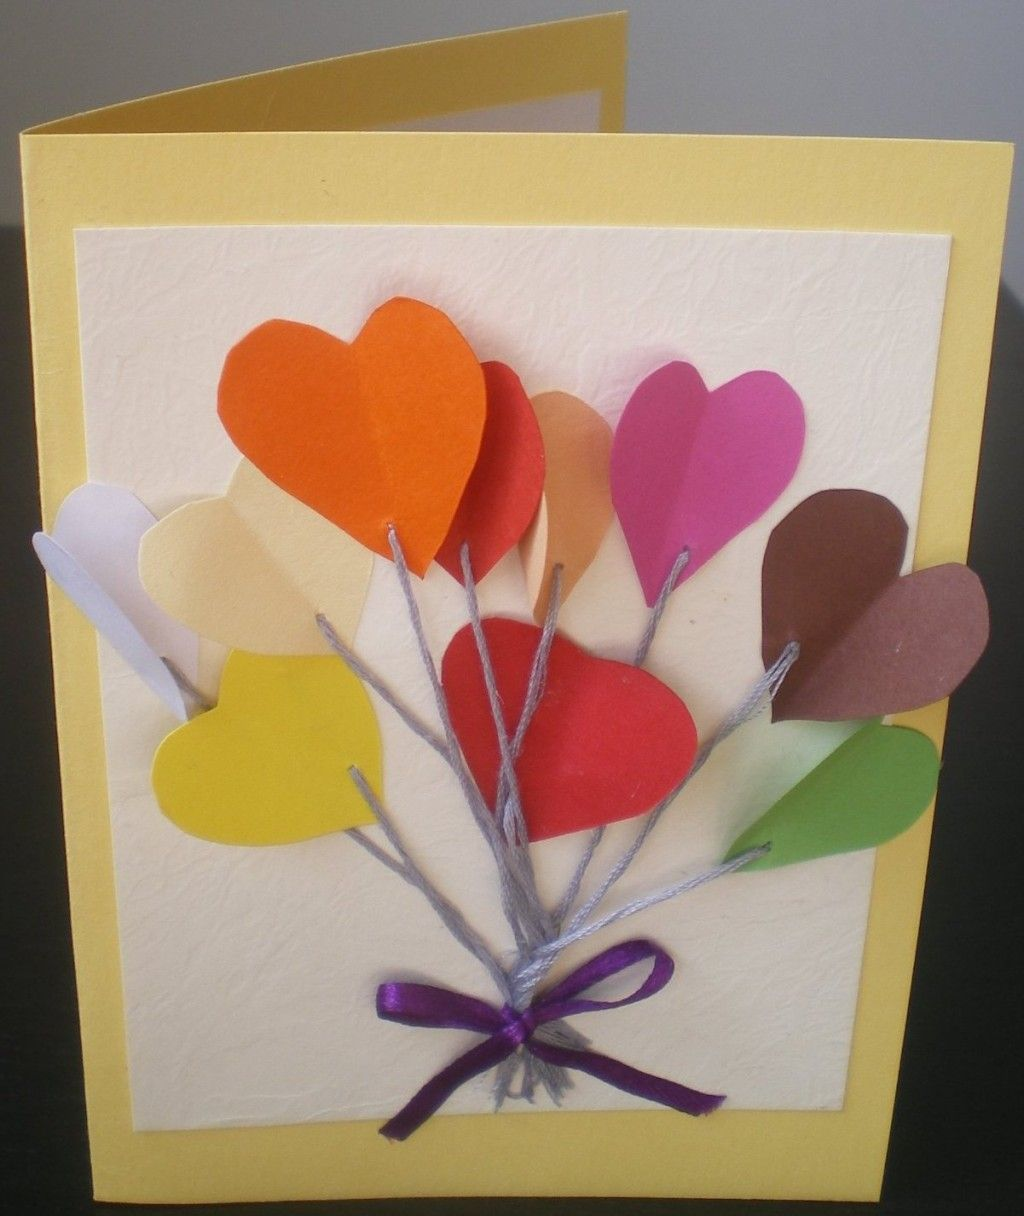 Cartas de cumplea os scrap pinterest cartas de - Ideas faciles para cumpleanos ...